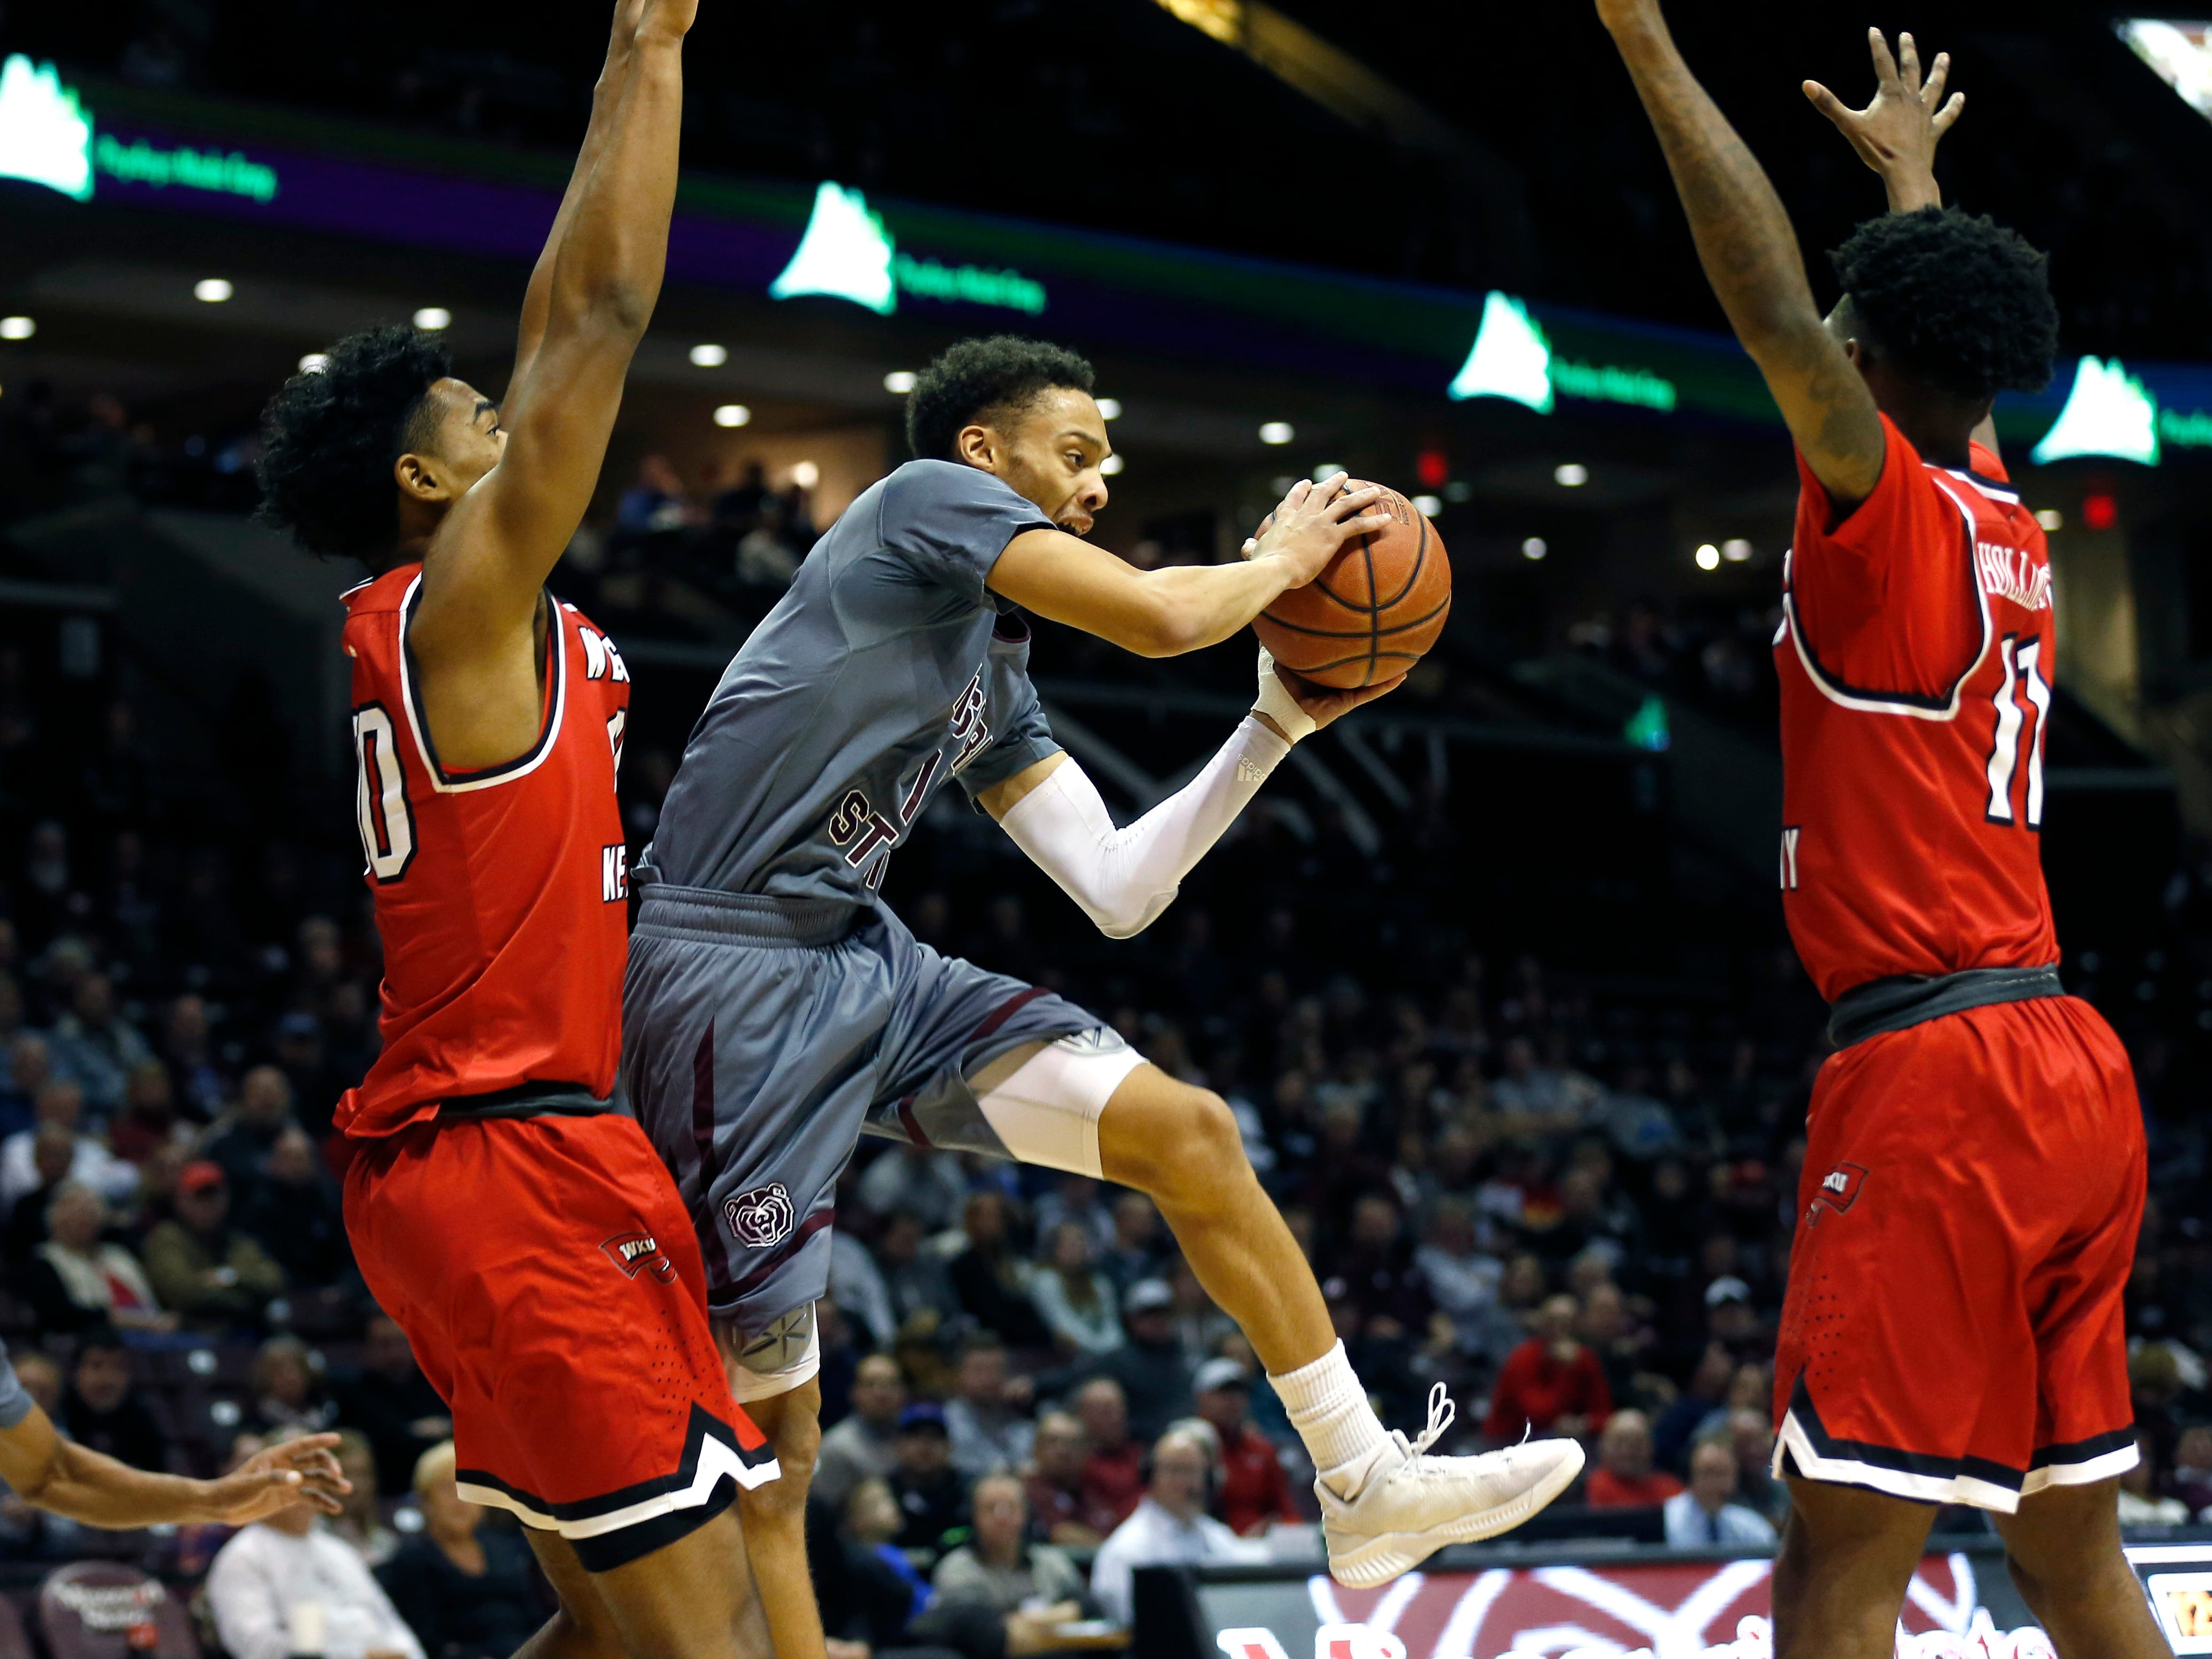 The Missouri State Bears take on the Western Kentucky Hilltoppers at JQH Arena on Wednesday, Dec. 5, 2018.